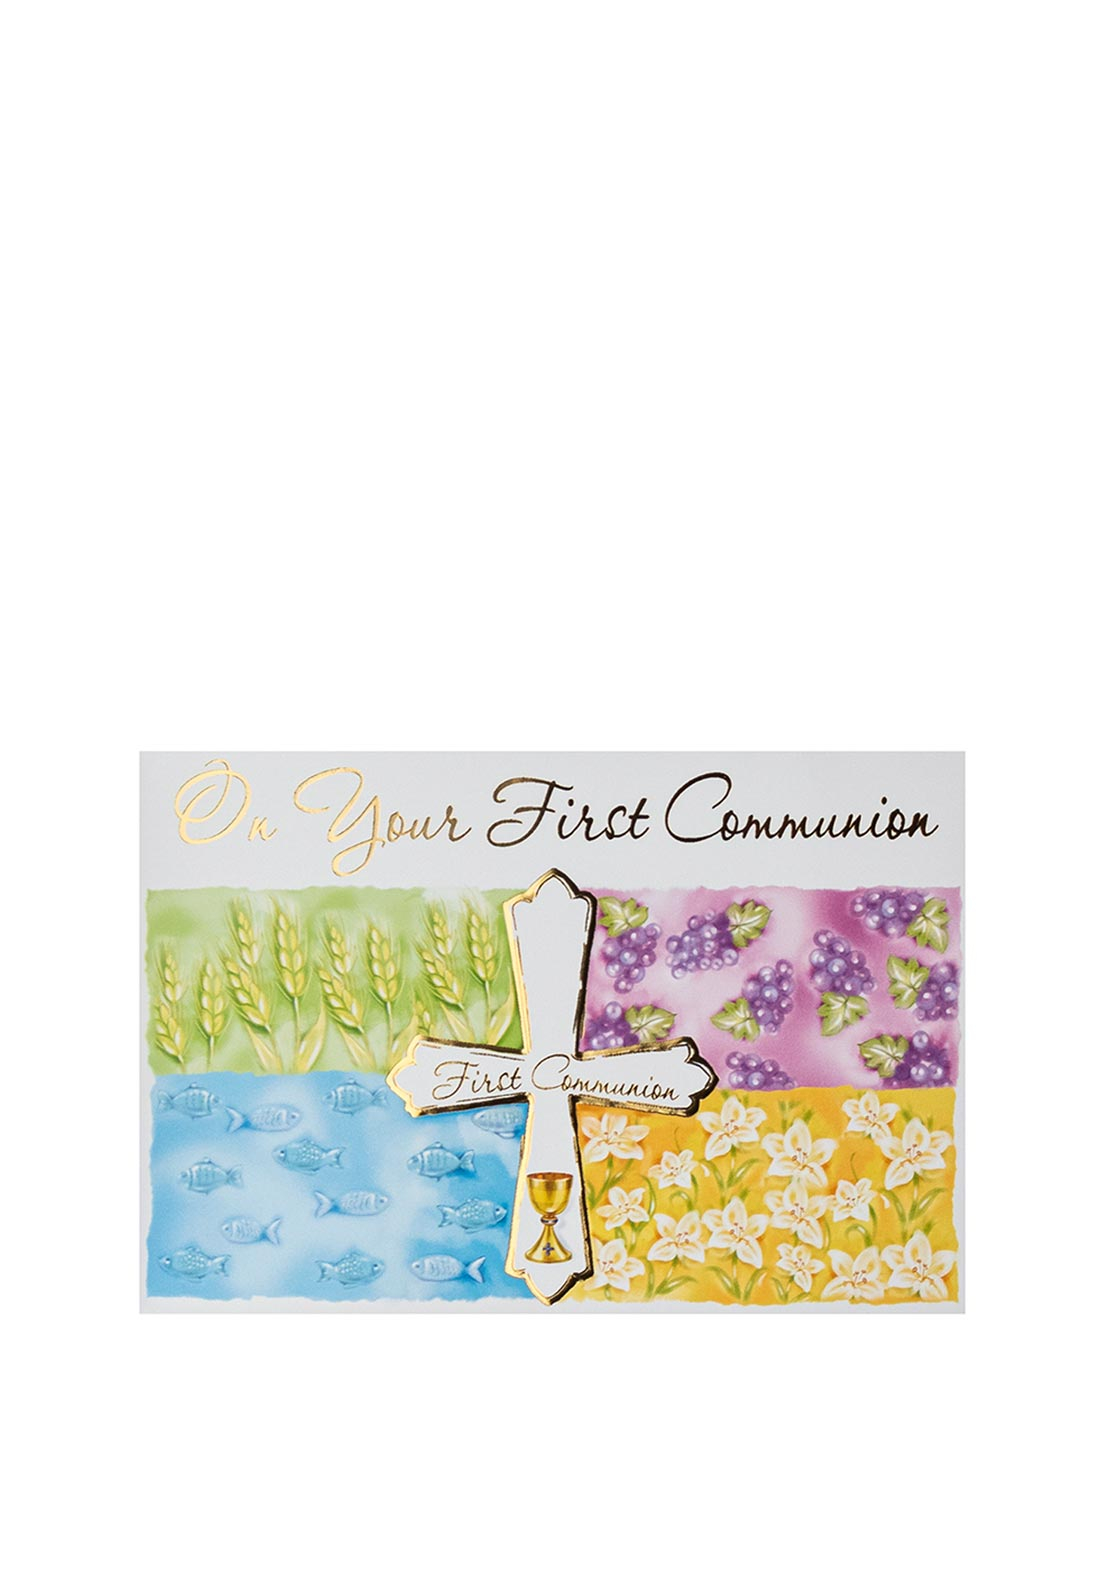 On Your First Communion Gift Card